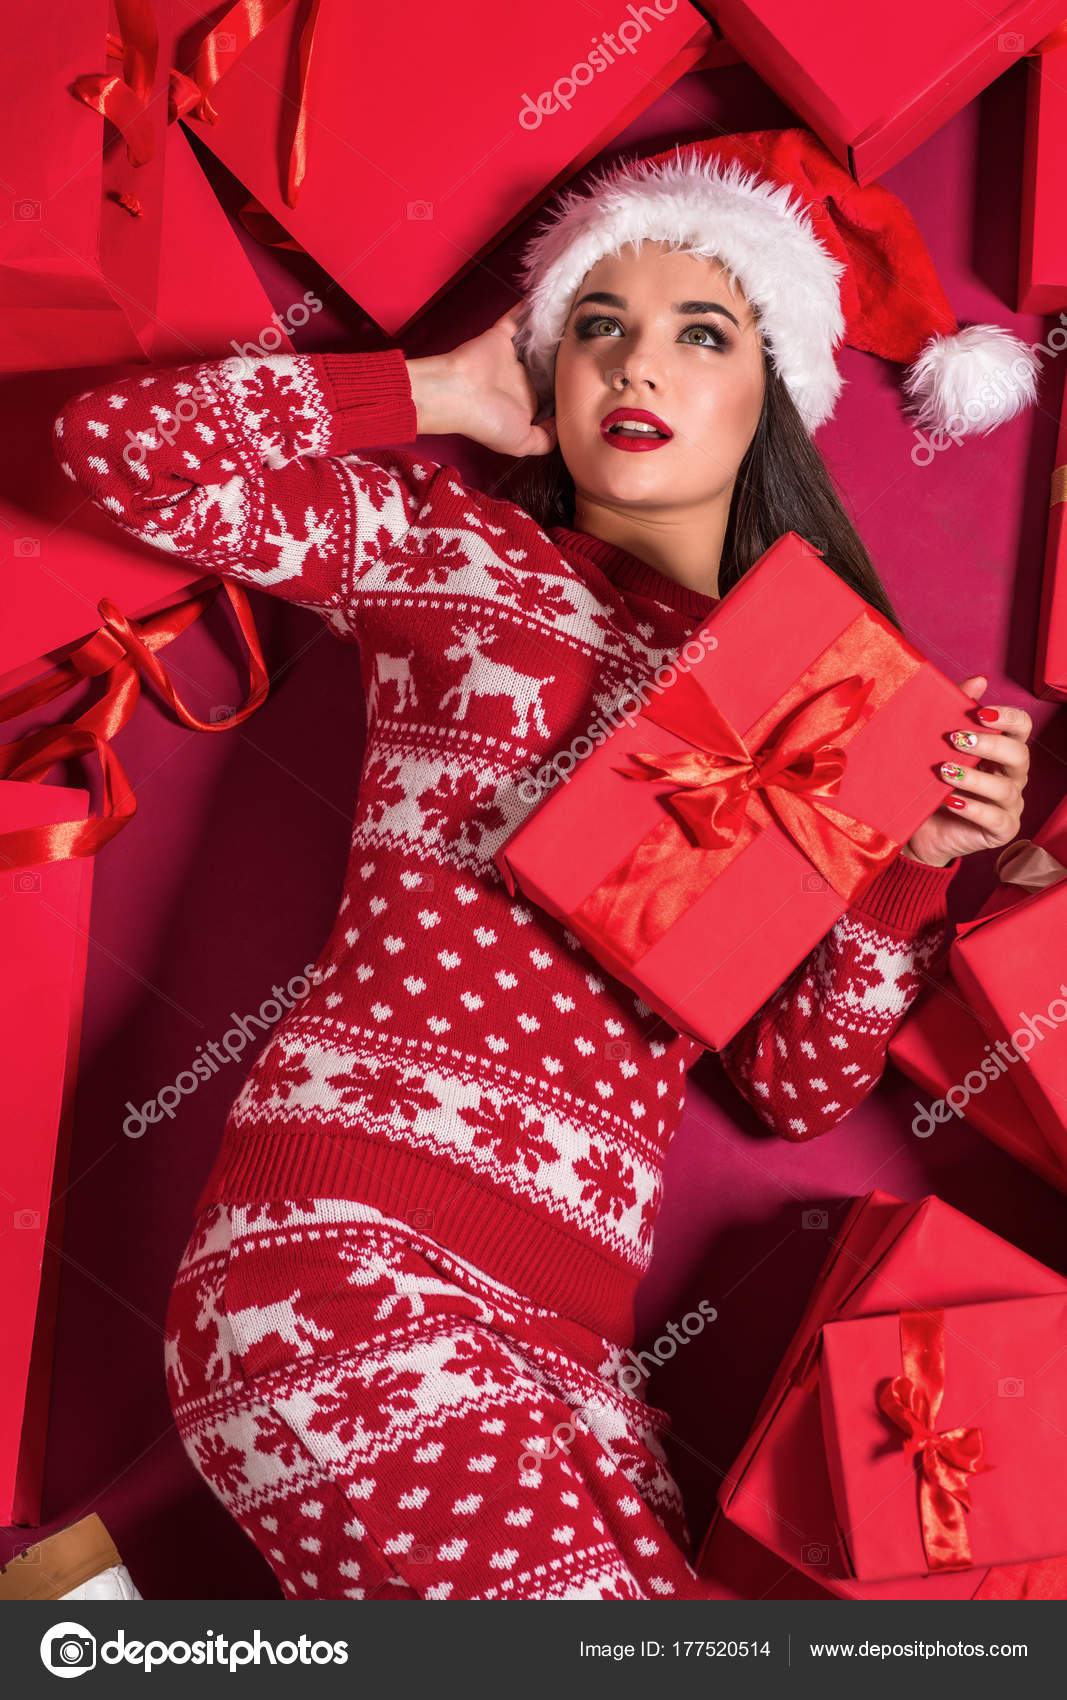 Gifts to the woman for the New 2018 59